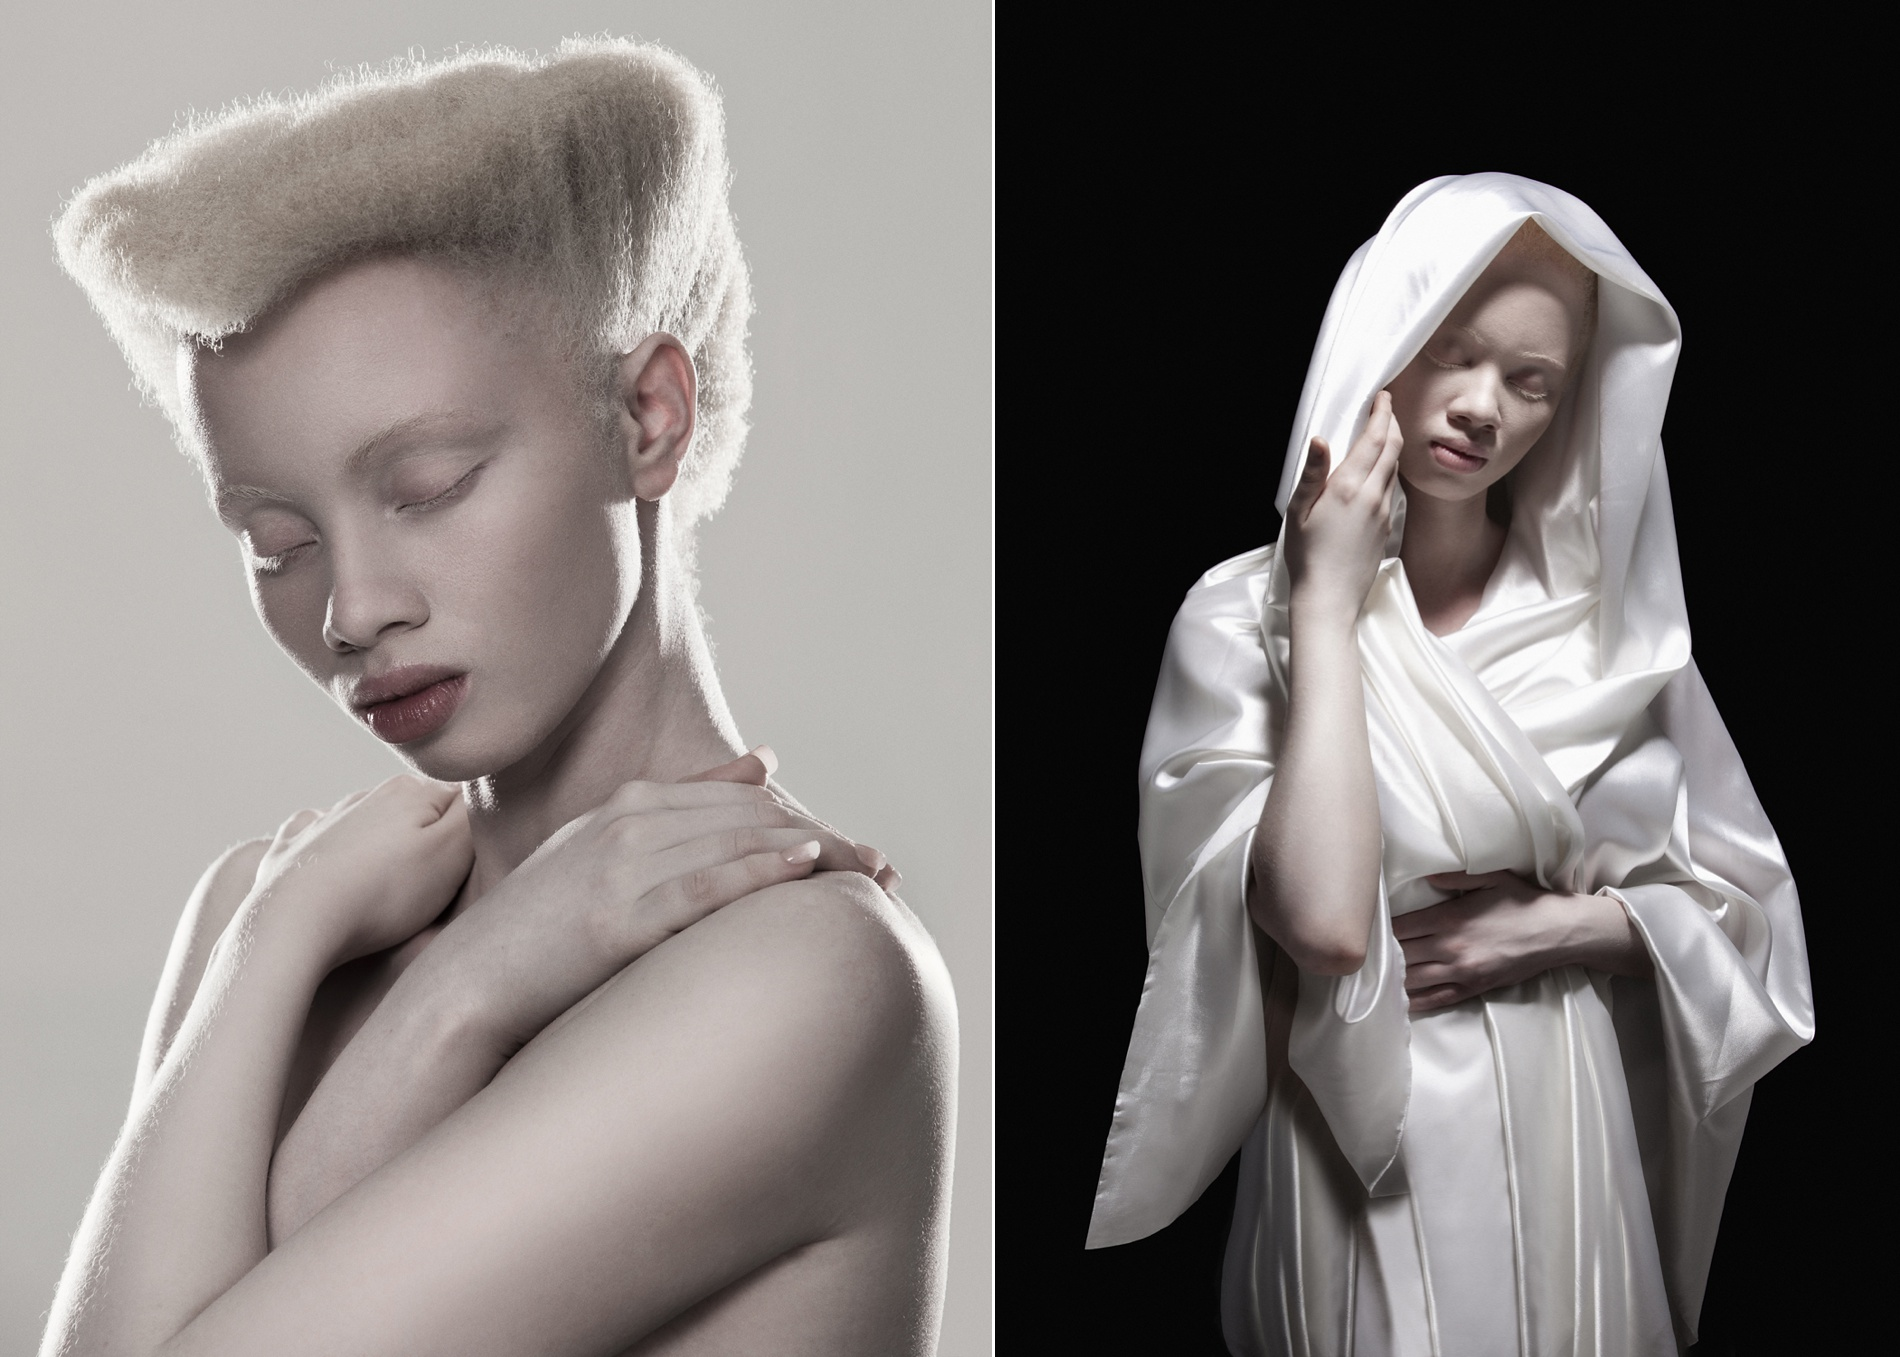 Albino Portrait Series by Justin Dingwall, the project explores the aesthetics of Albinism in contrast with the idealized perception of beauty.